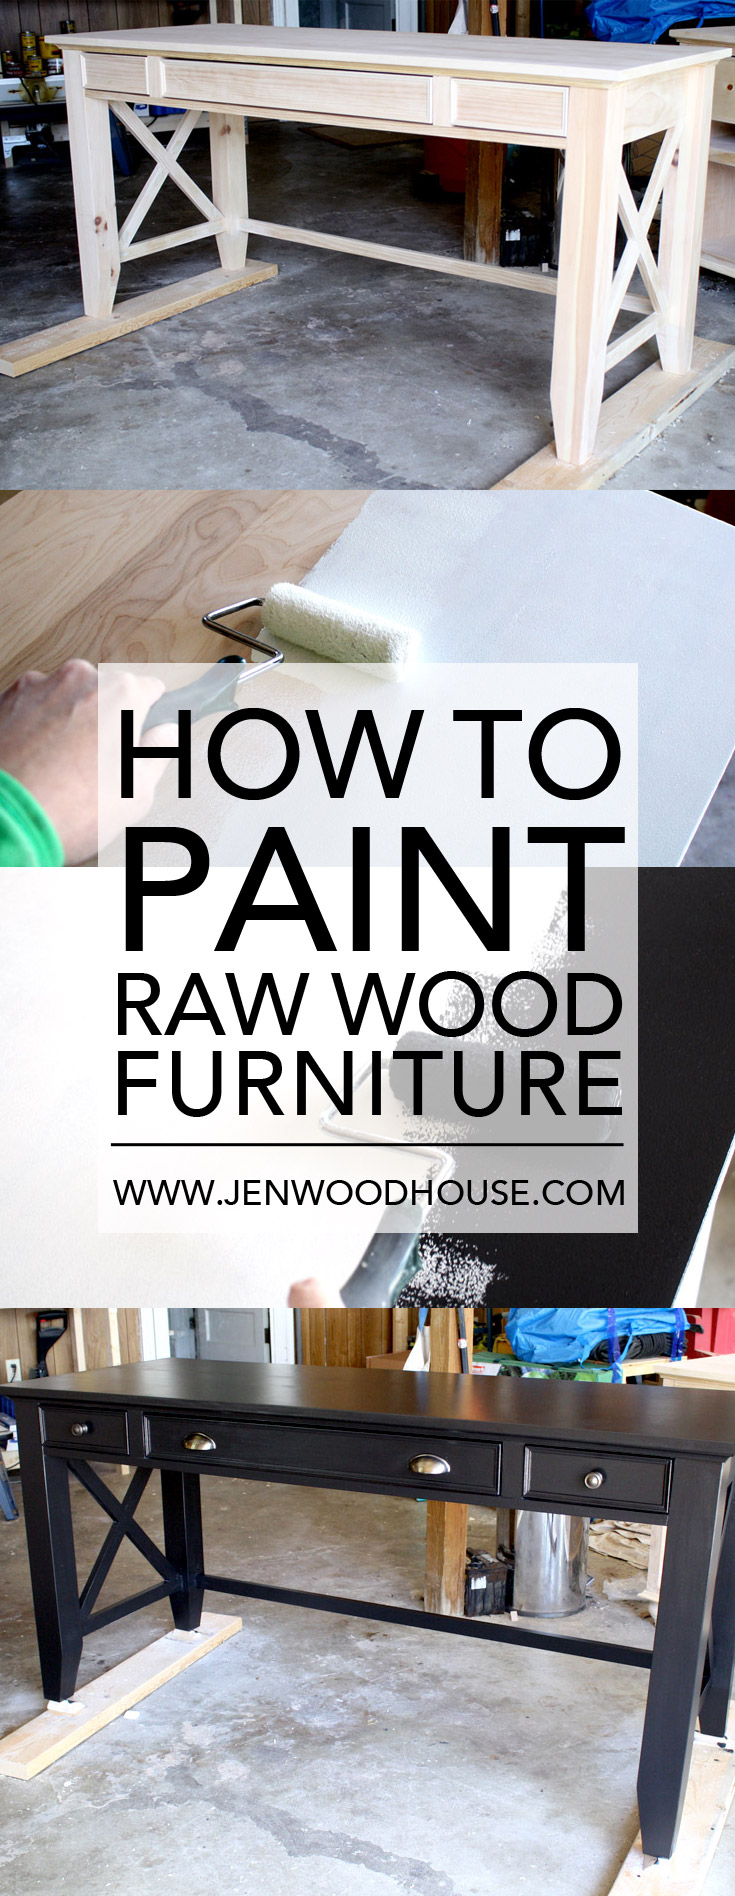 In-depth tutorial on how to paint raw wood furniture   www.jenwoodhouse.com